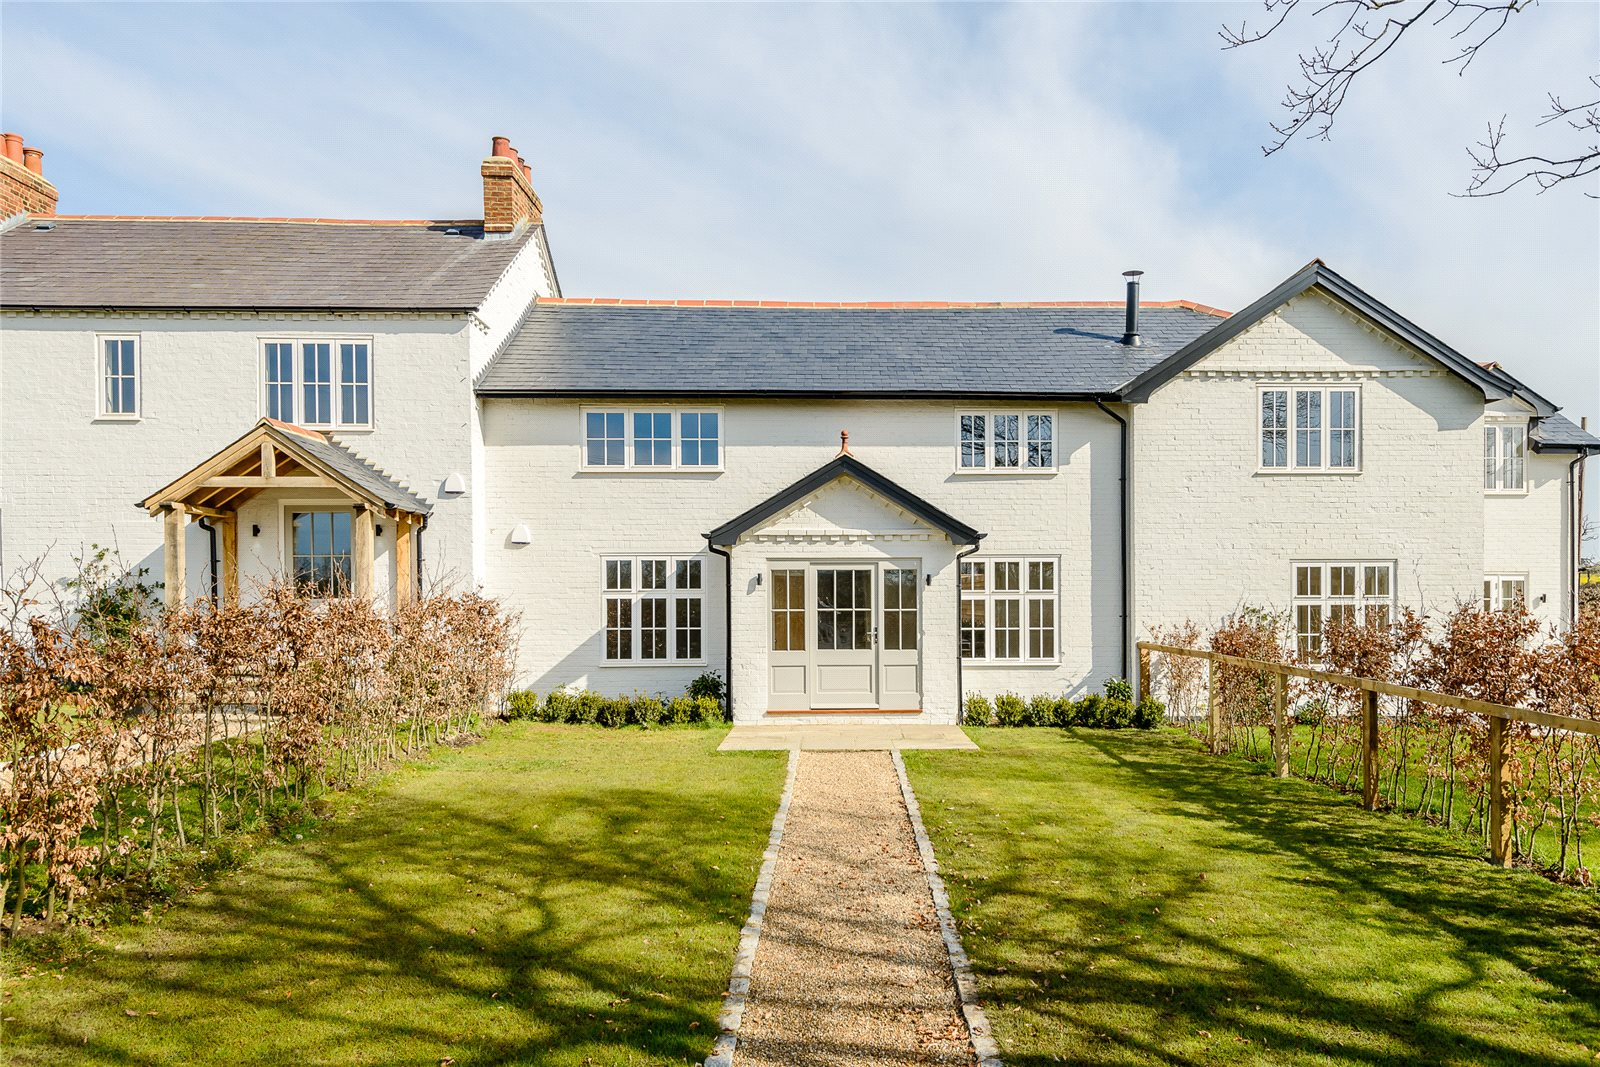 Casa Unifamiliar por un Venta en Church Lane, Warfield, Berkshire, RG42 Warfield, Inglaterra